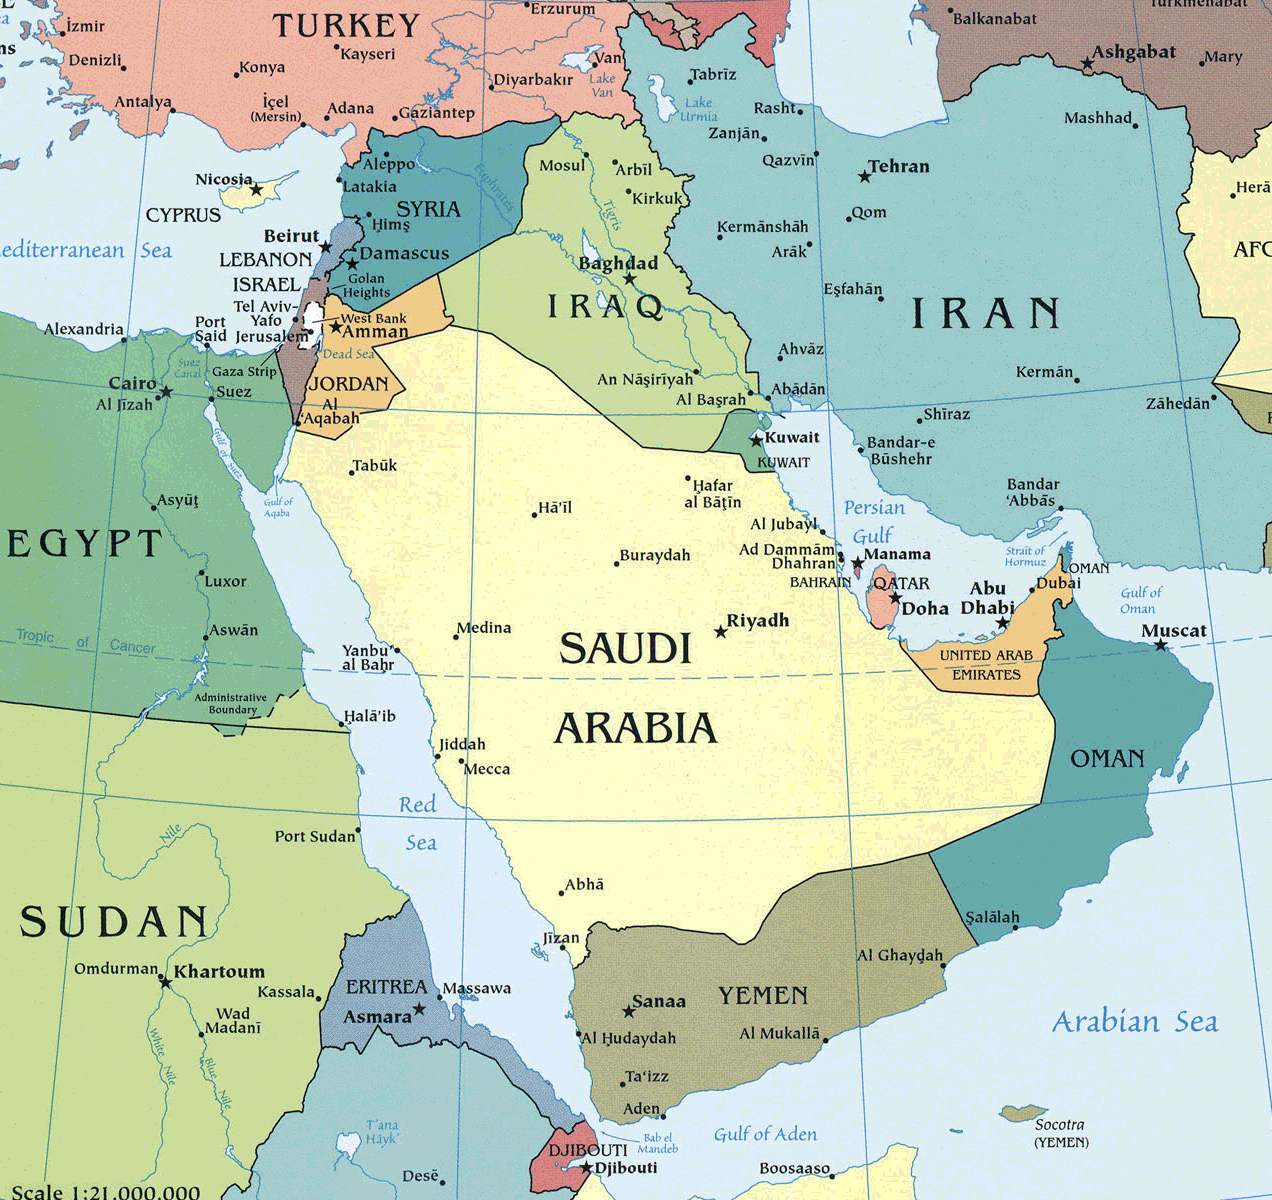 map ofmiddle east with Txu Oclc 192062619 Middle East Pol 2008 on Dan Mihai Barliba Despre Relatia Orient Occident In Coordonate Contemporane furthermore File Syrian refugees in the Middle East map together with The New Middle East Exit America Enter Russia together with Europe 1950 5hWWPYpZmUpiGfN5kiBK Yw u7AbLlatYWk iJ0g7QM moreover India Pakistan Celebrate Independence Day 150815085958186.